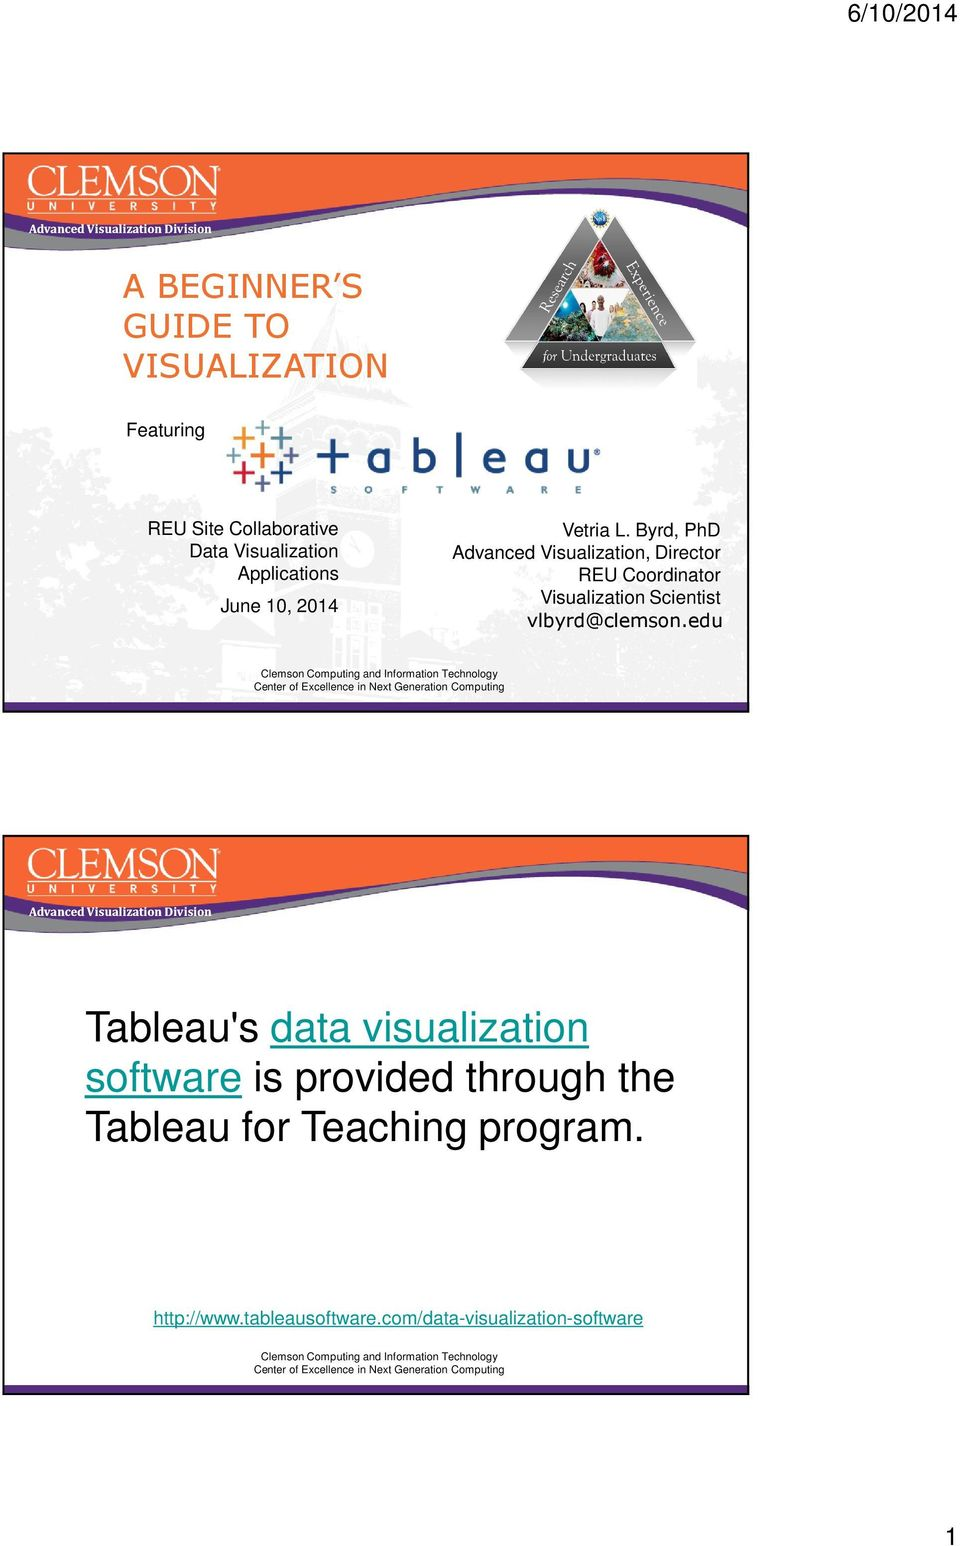 Tableau's data visualization software is provided through the